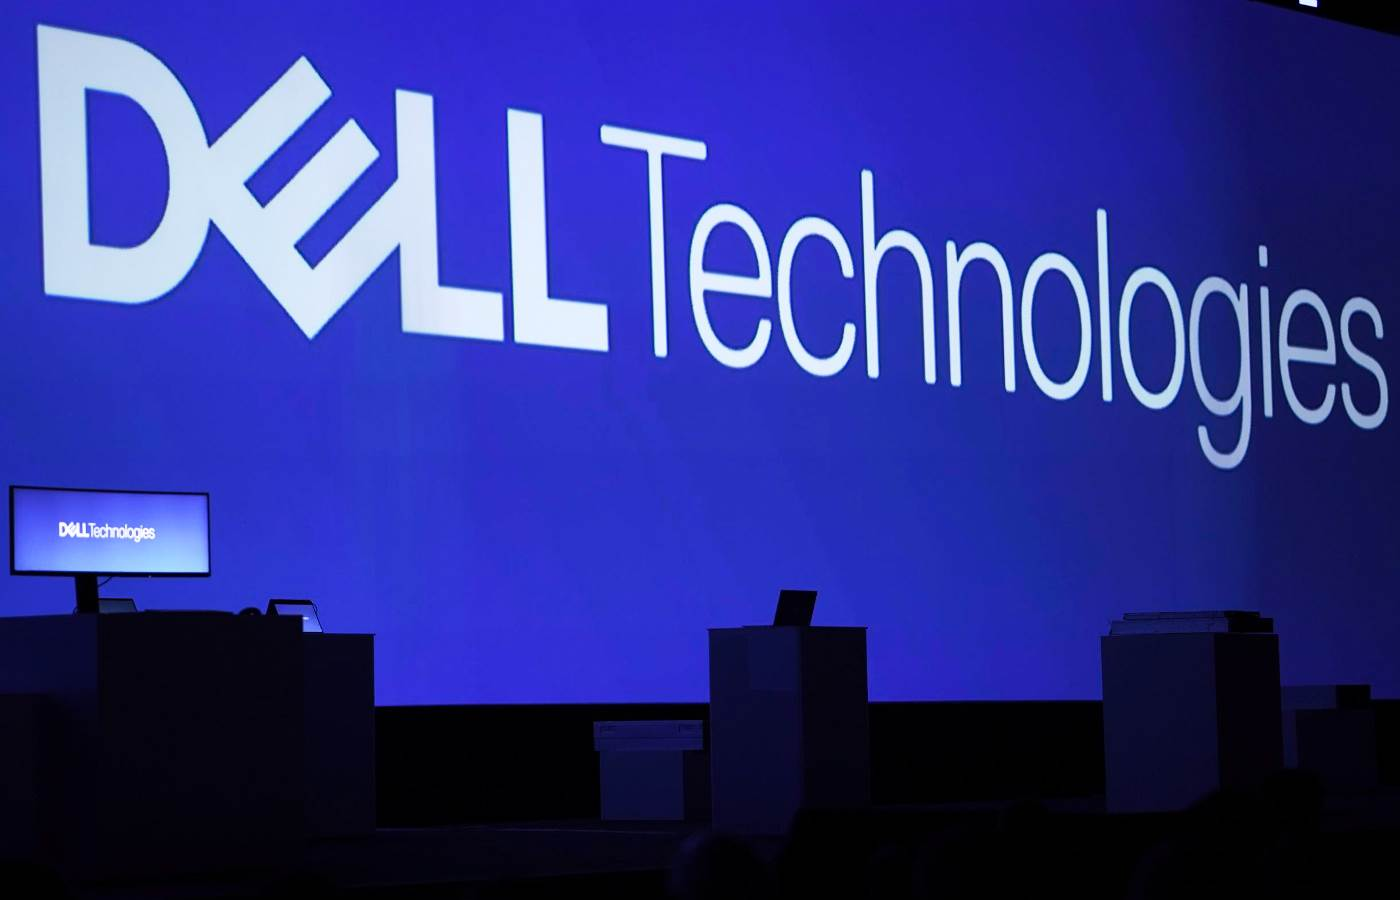 Dell Technologies offre nuovi display industriali touchscreen thumbnail